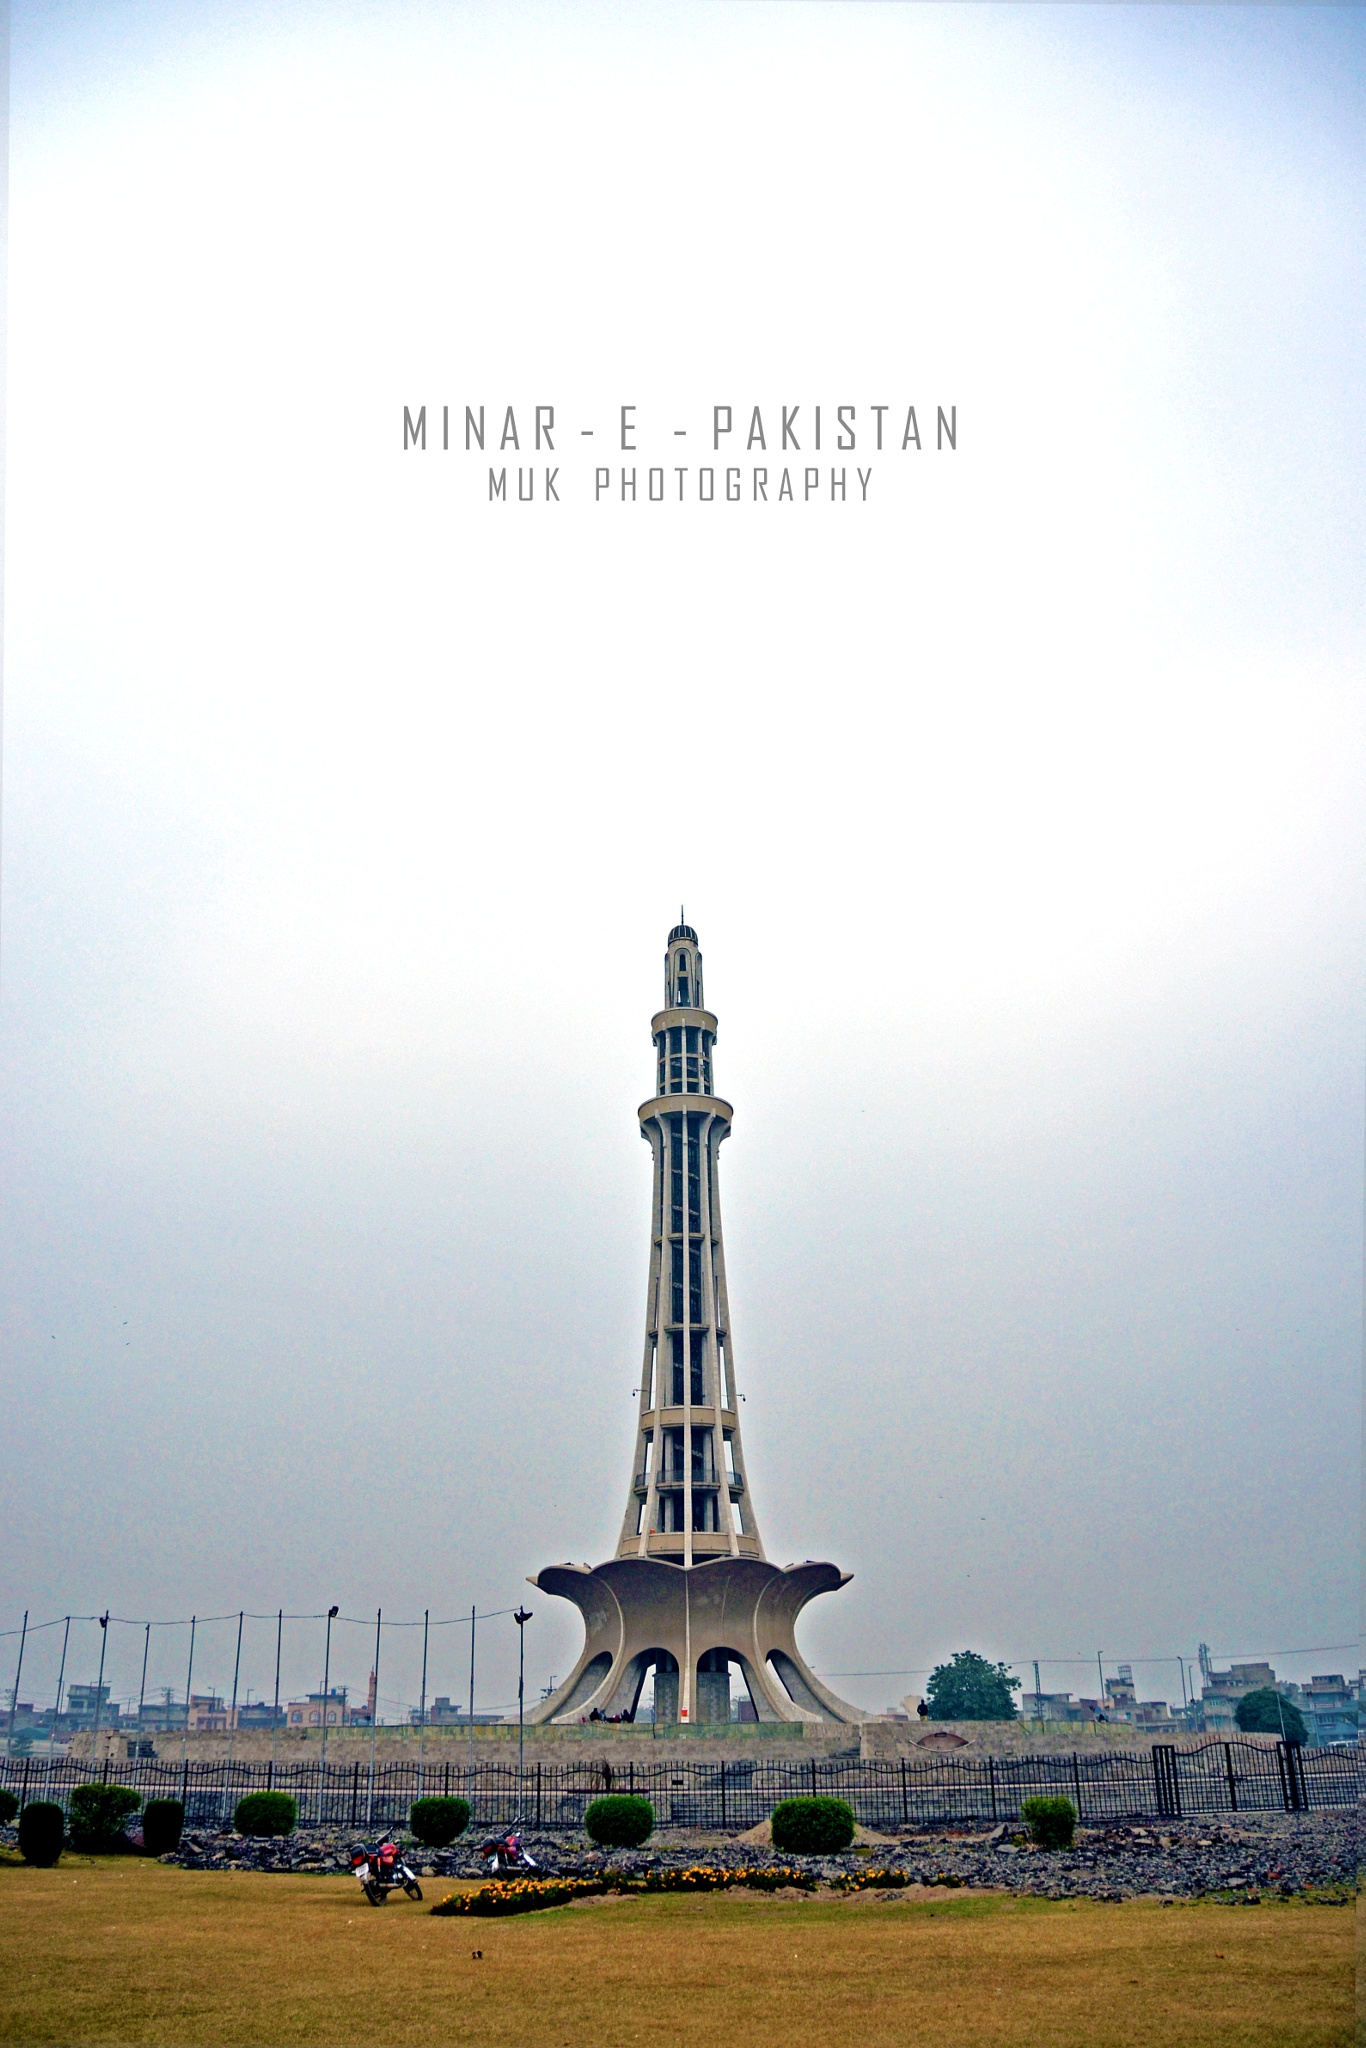 Minar-e-Pakistan by MUK Photography